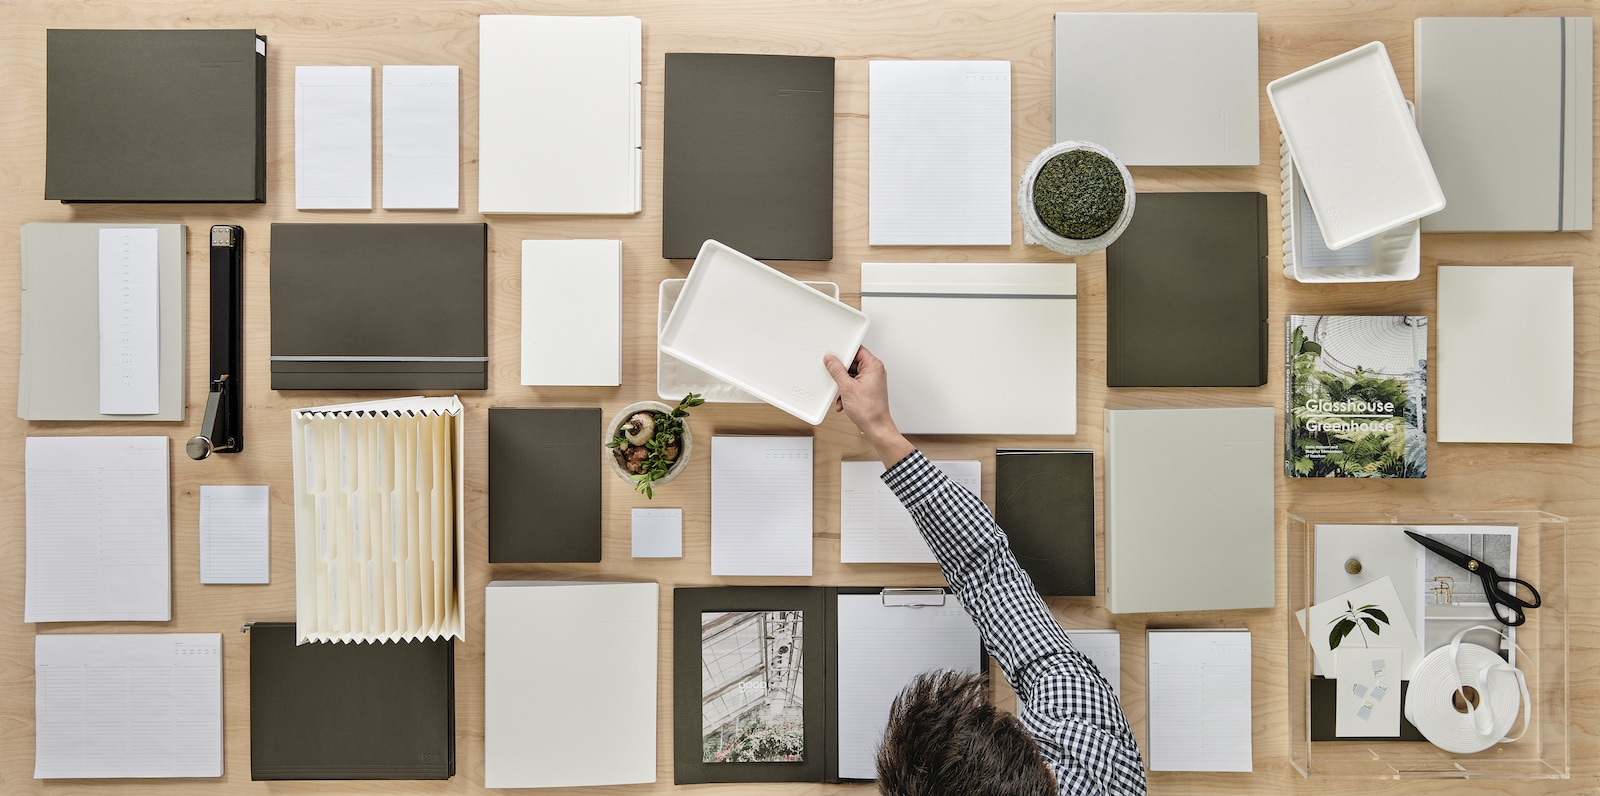 Russell + Hazel Founder Returns With Eco-Friendly Office Line